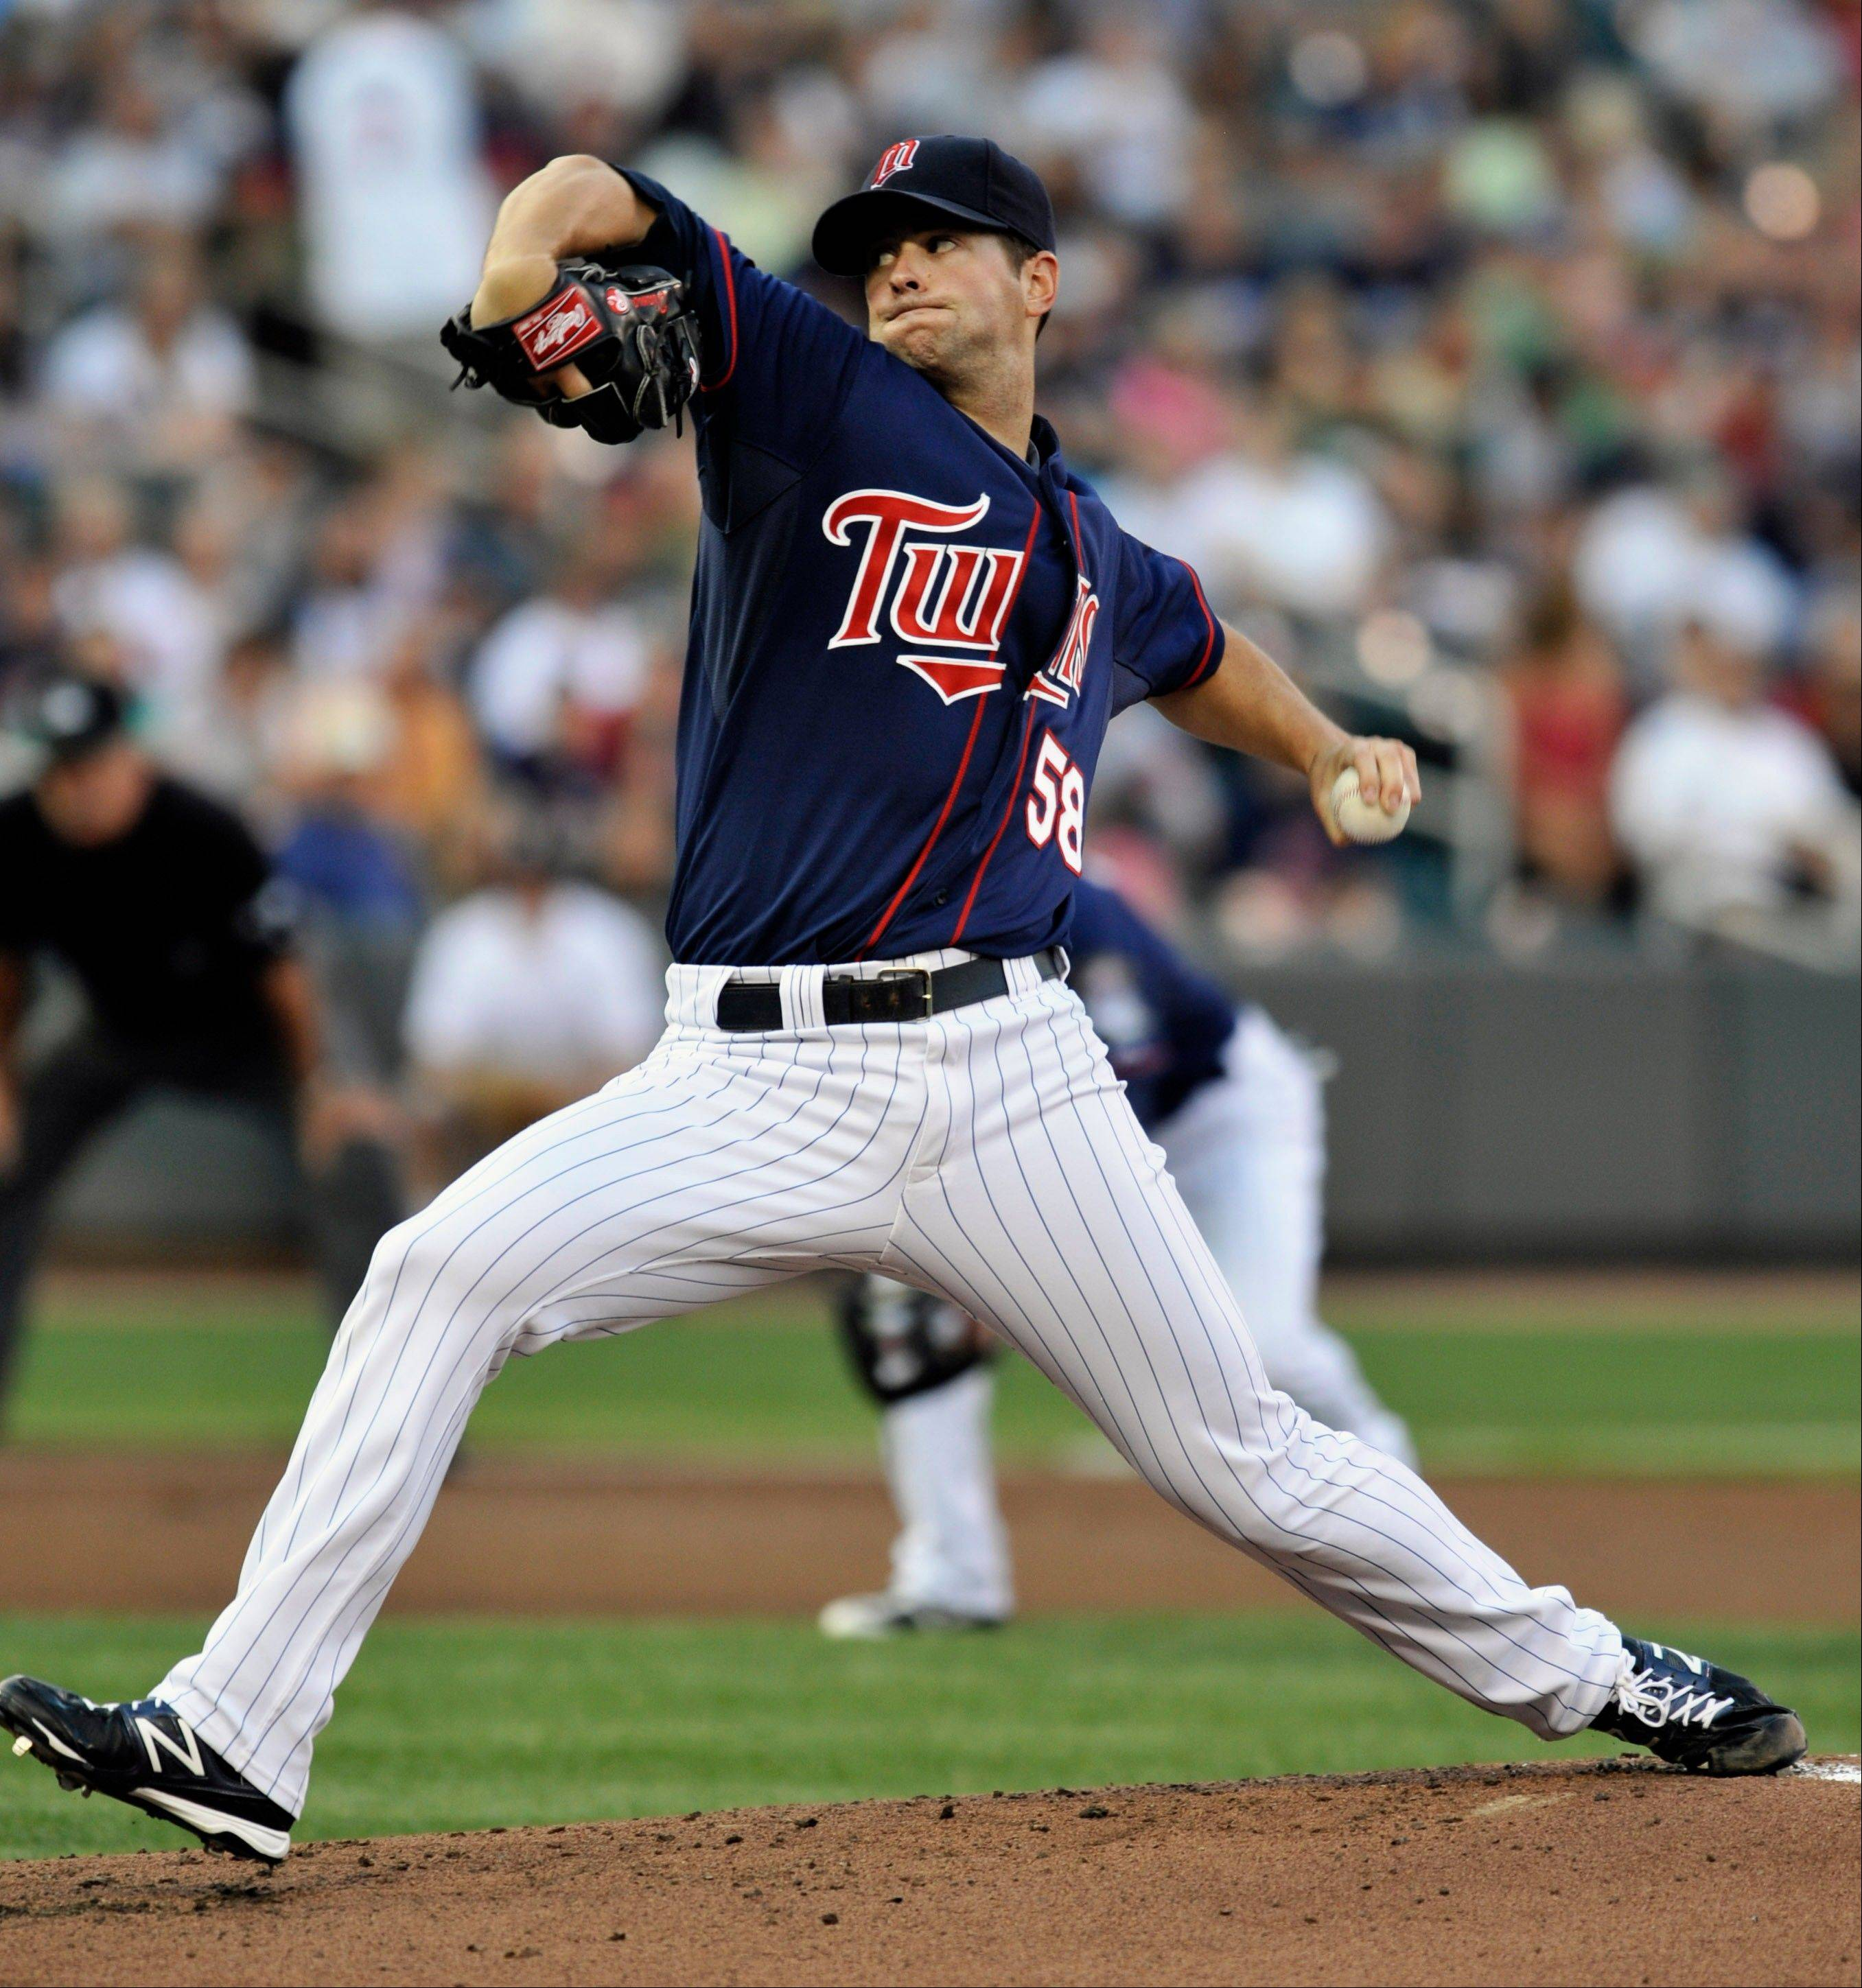 Minnesota's Scott Diamond allowed just one Cleveland baserunner after the fifth inning, striking out six and notching his first career shutout Friday at home.